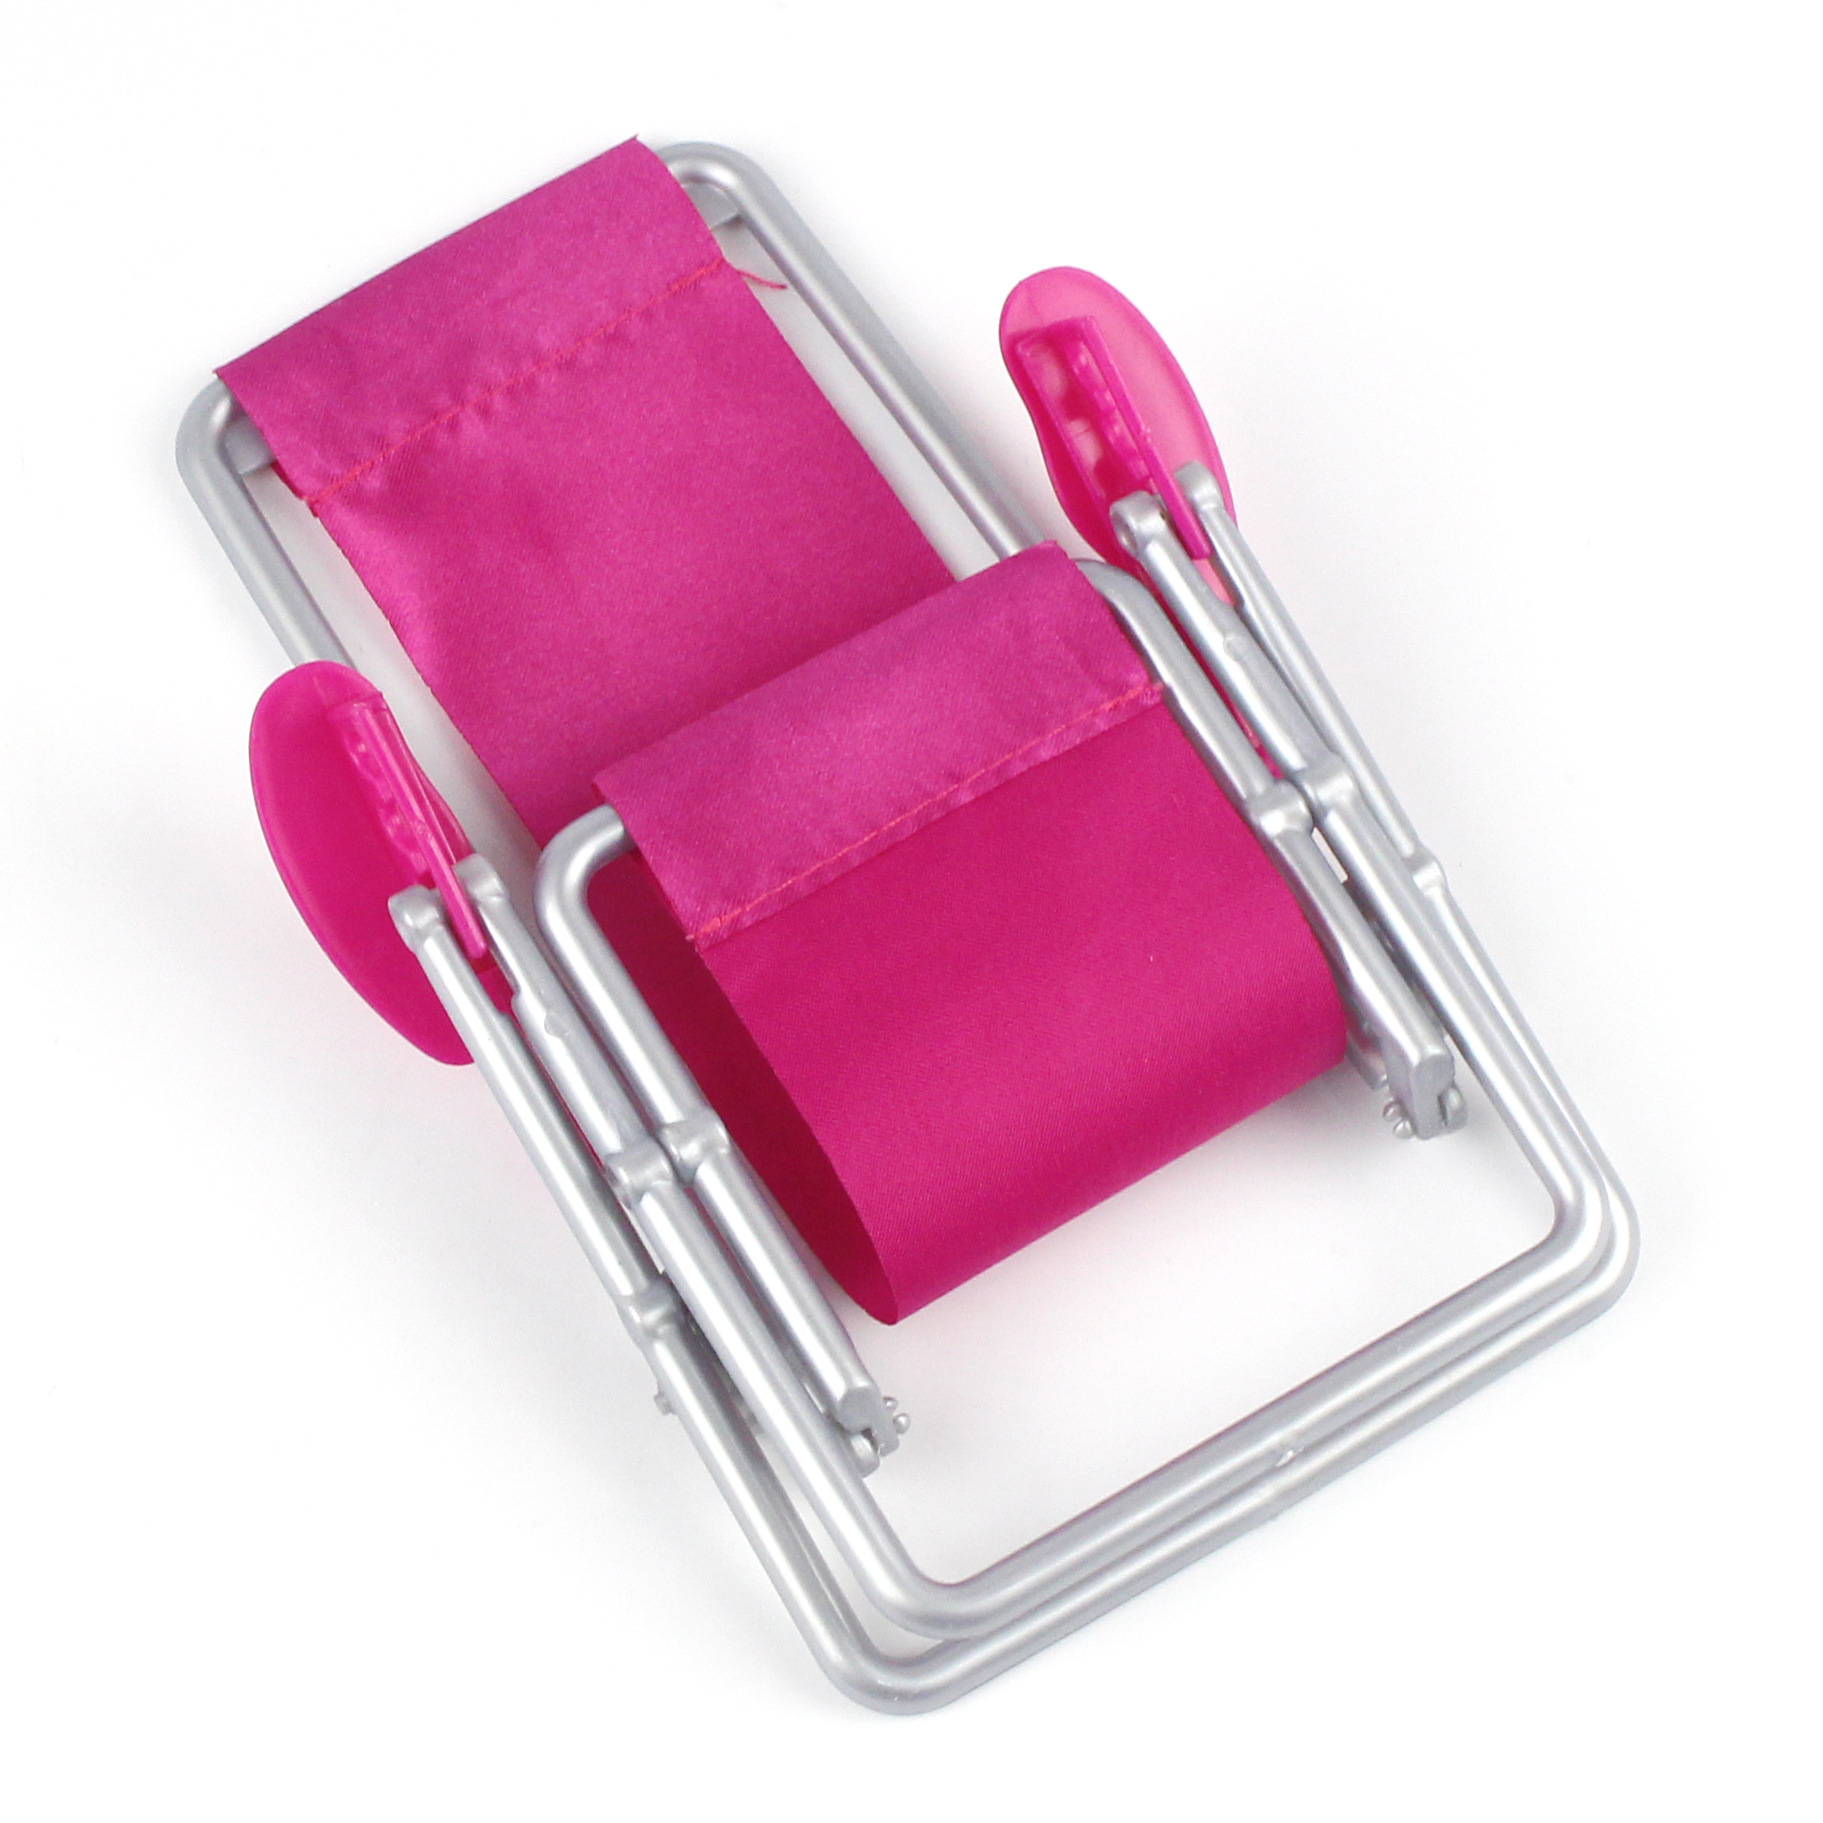 1:6 Scale Foldable Furniture Rocking Beach Chair For Baby Doll Princess Pink Rose Deckchair For Lovely Miniature Baby Dolls